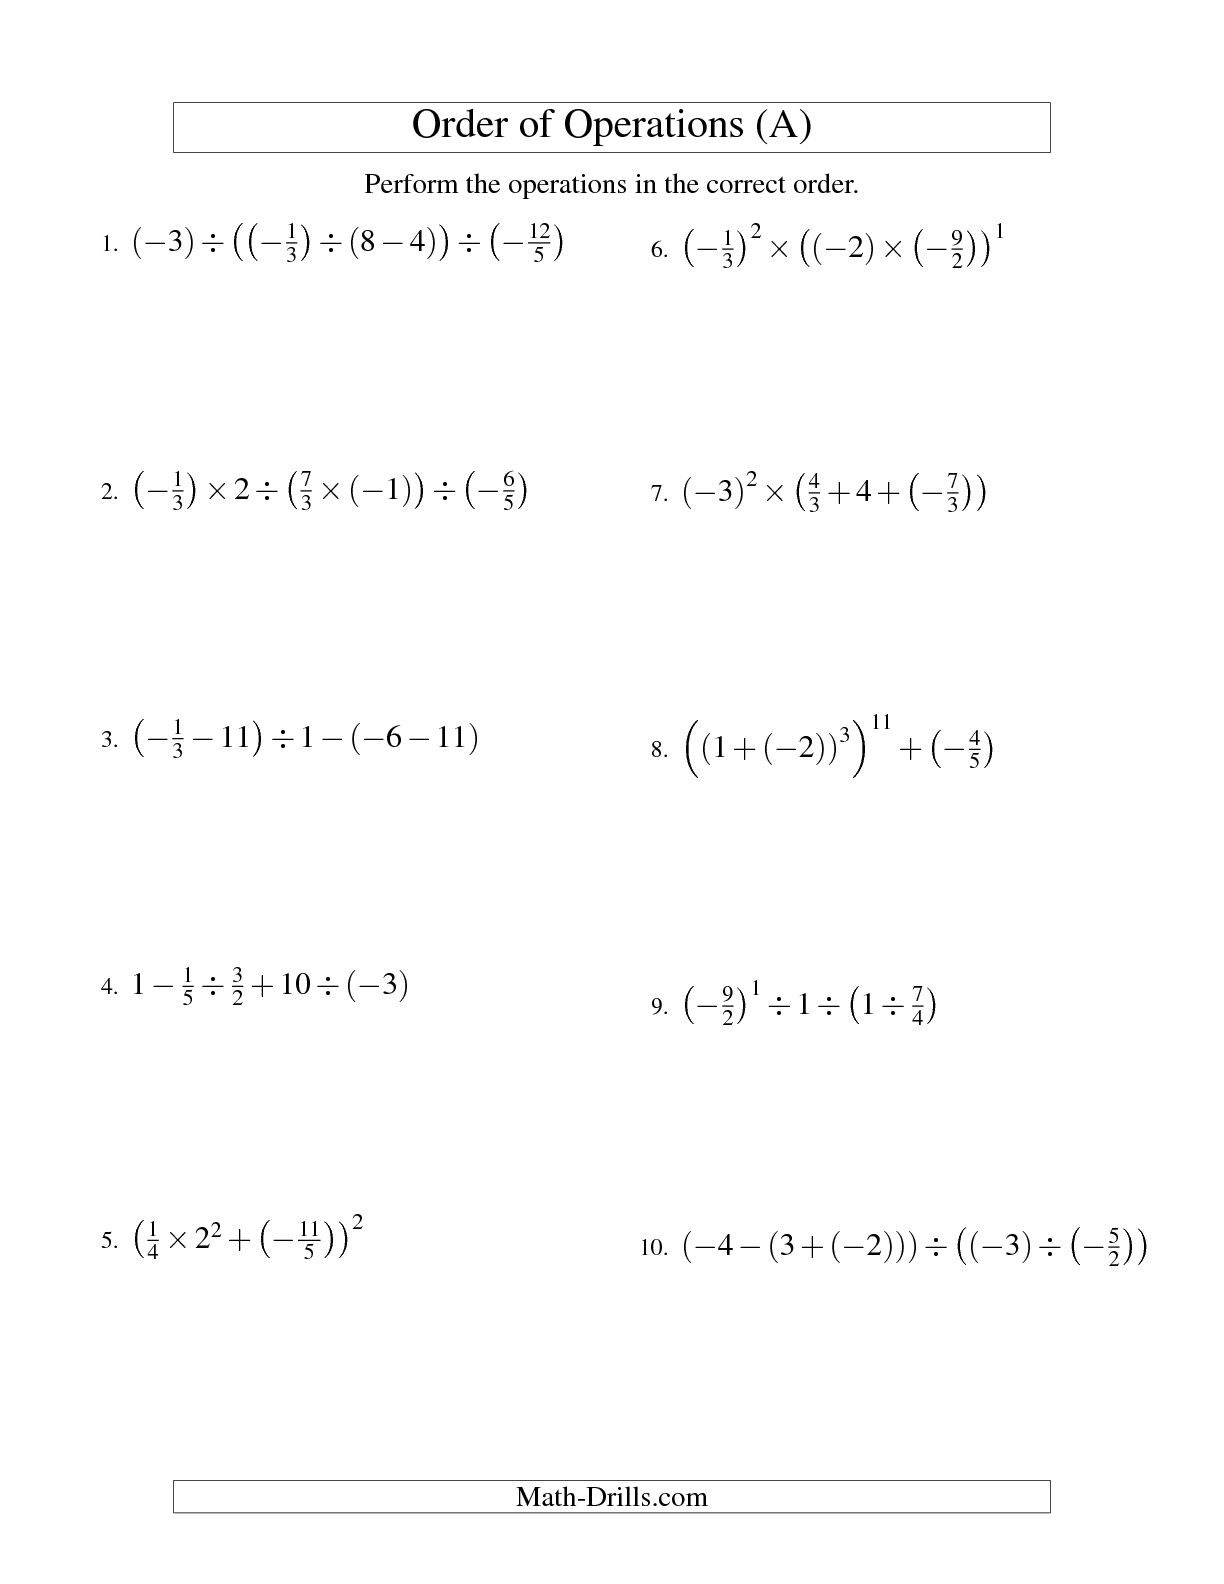 Order Of Operations With Exponents And Parentheses Worksheet